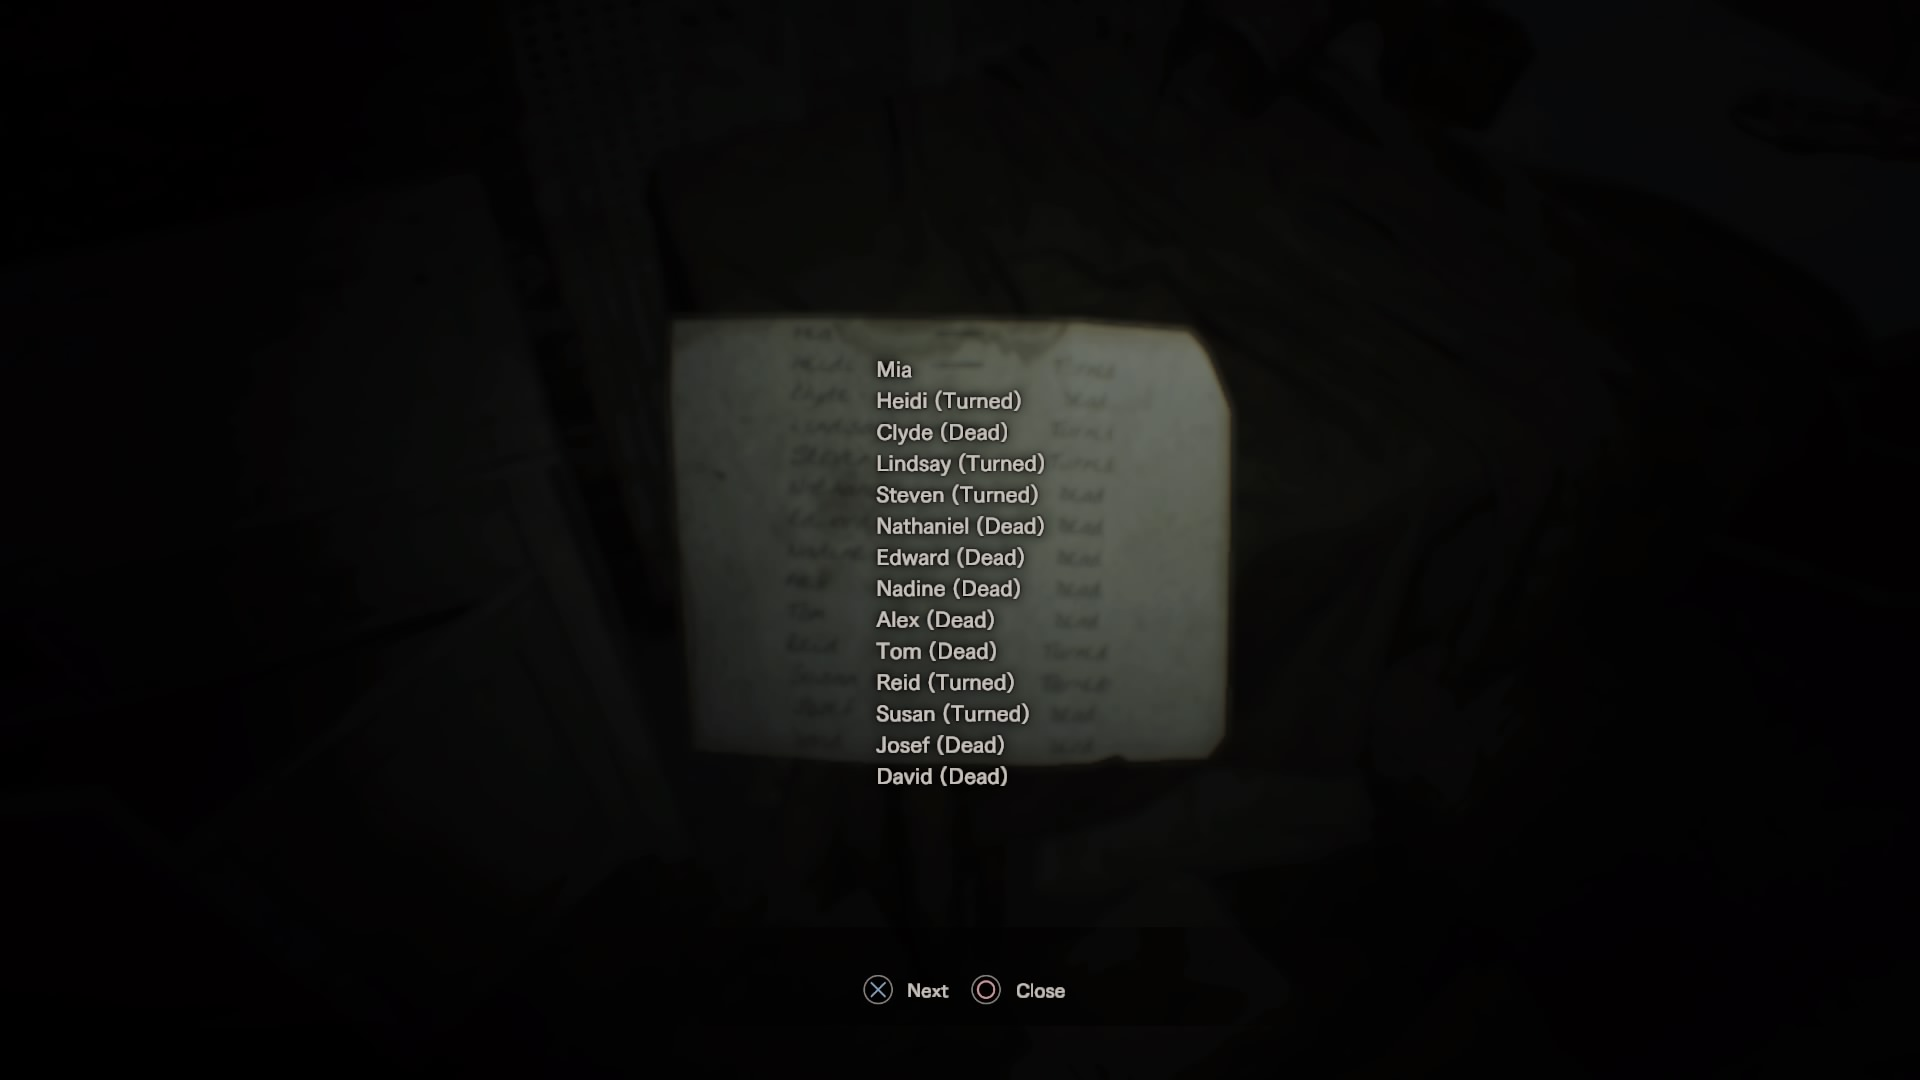 resident evil 7 characters list